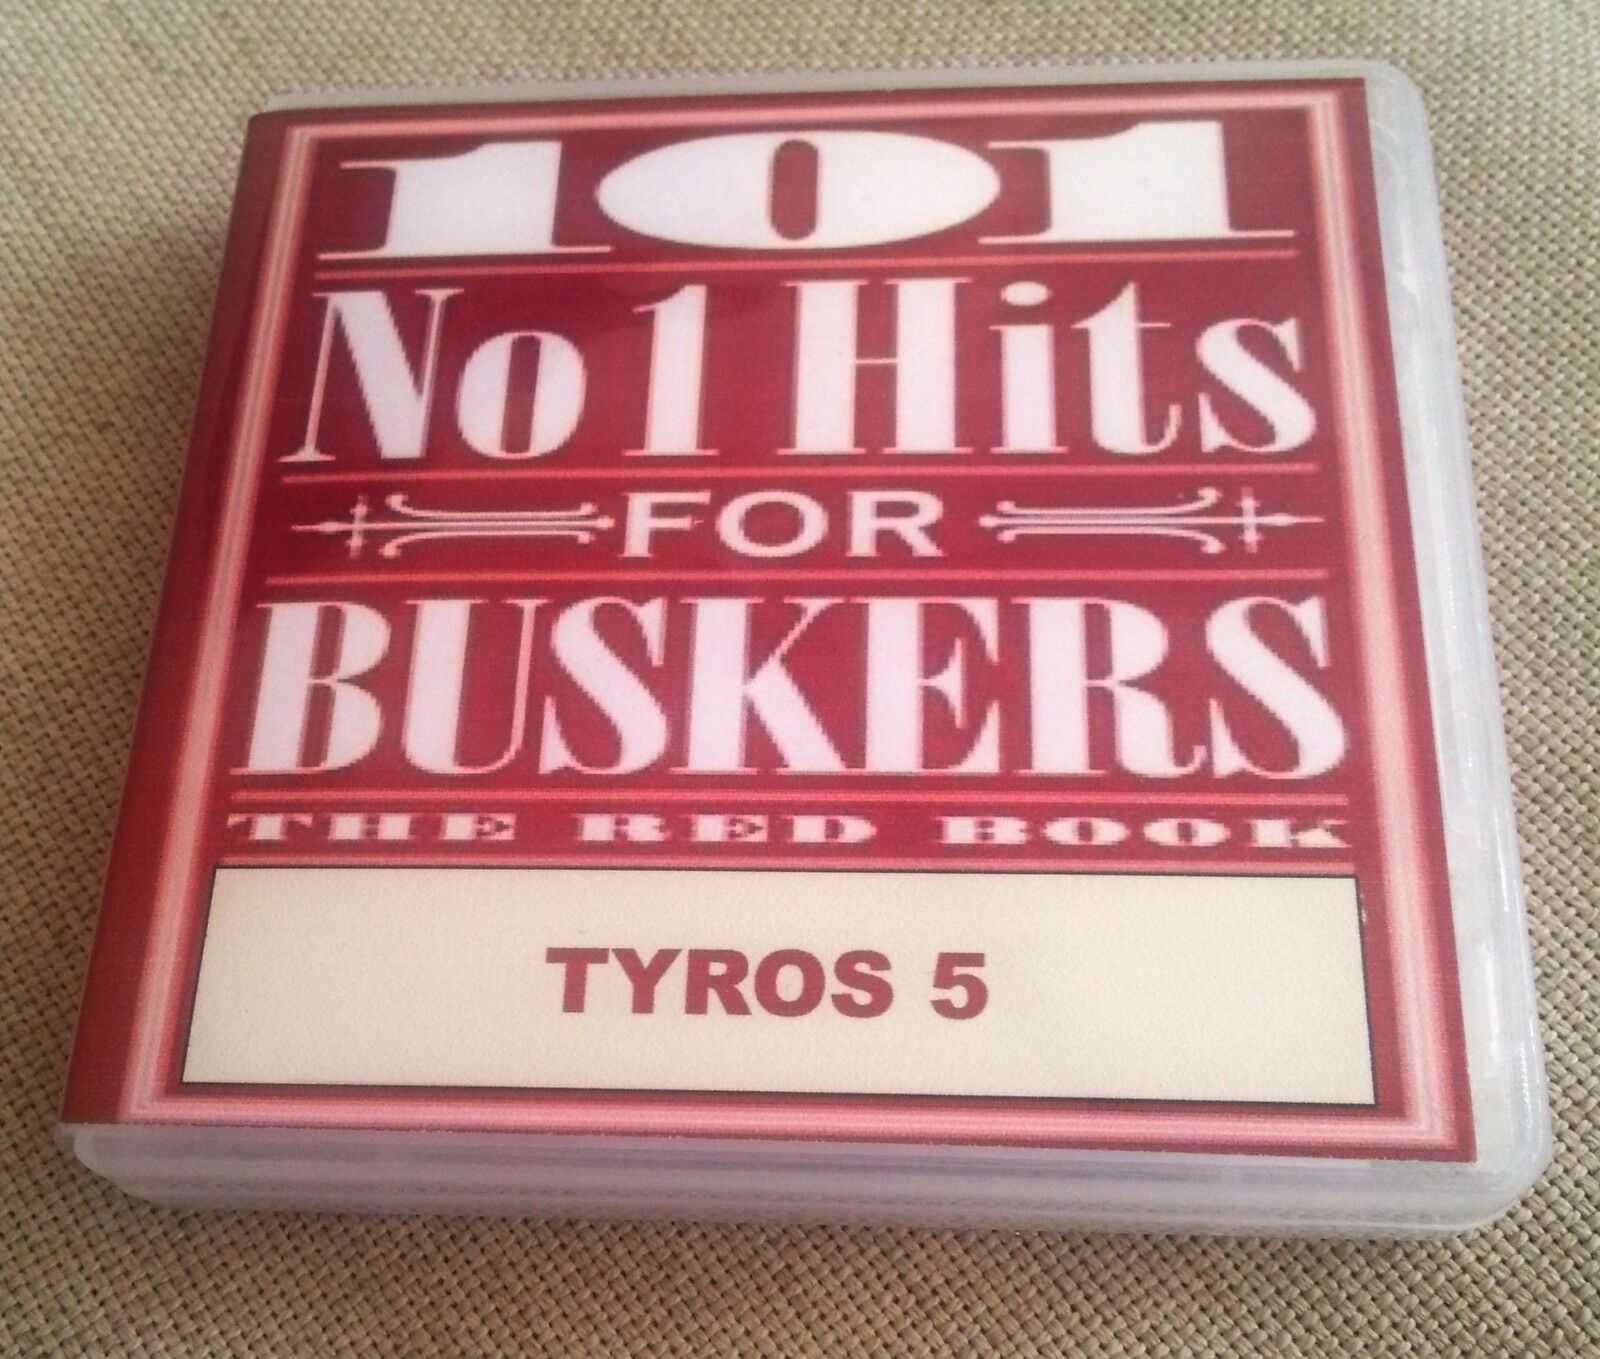 CVP /& PSR-S 101 NUMBER 1 HITS FOR BUSKERS USB AND BOOK SET Yamaha Tyros